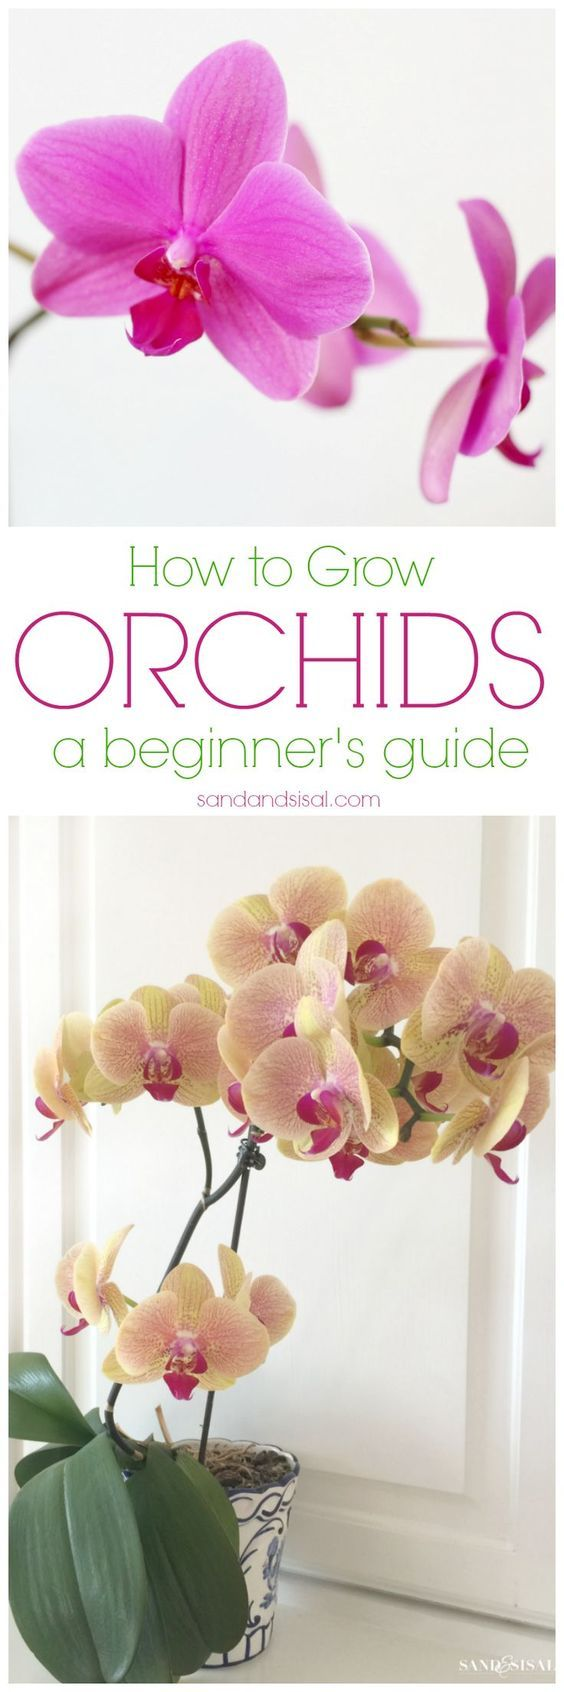 Orchids are actually EASY to grow and are so rewarding with blooms that can last for months! Once you read these easy tips, How to Grow Orchids - a beginner's guide, you will be hooked on orchids forever!